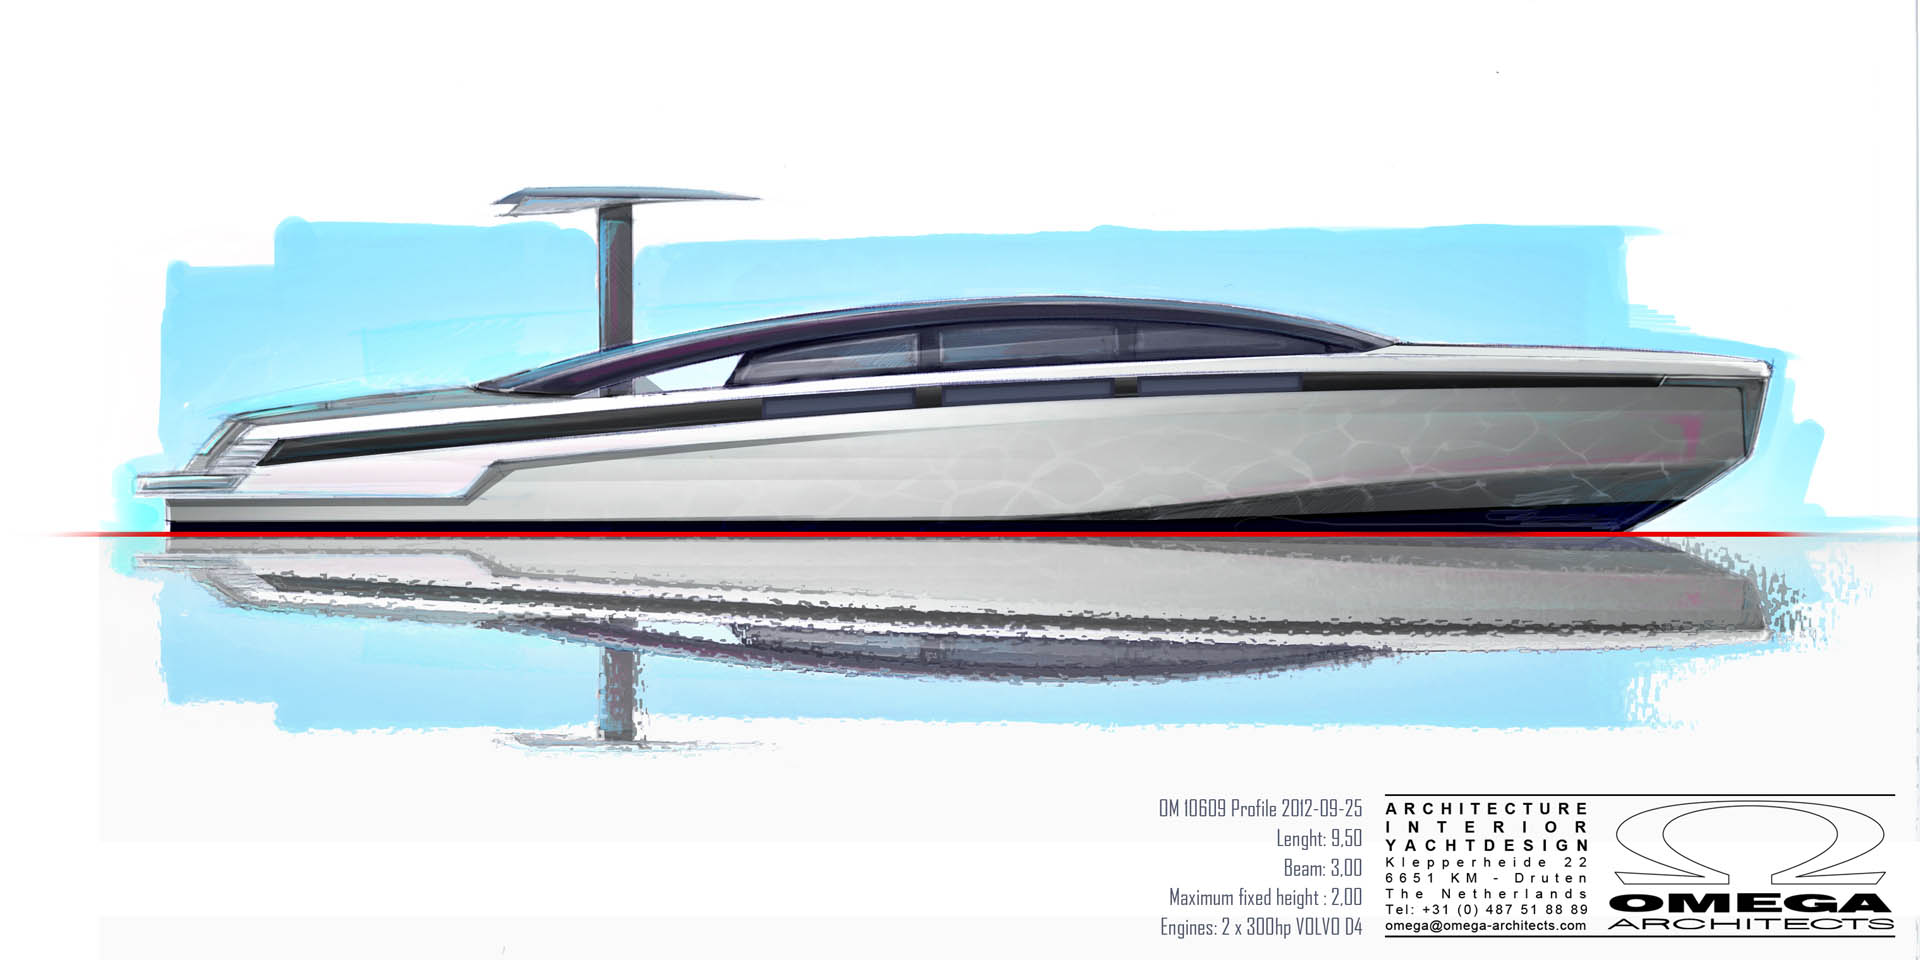 Limo Tender t/t Yalla design drawing